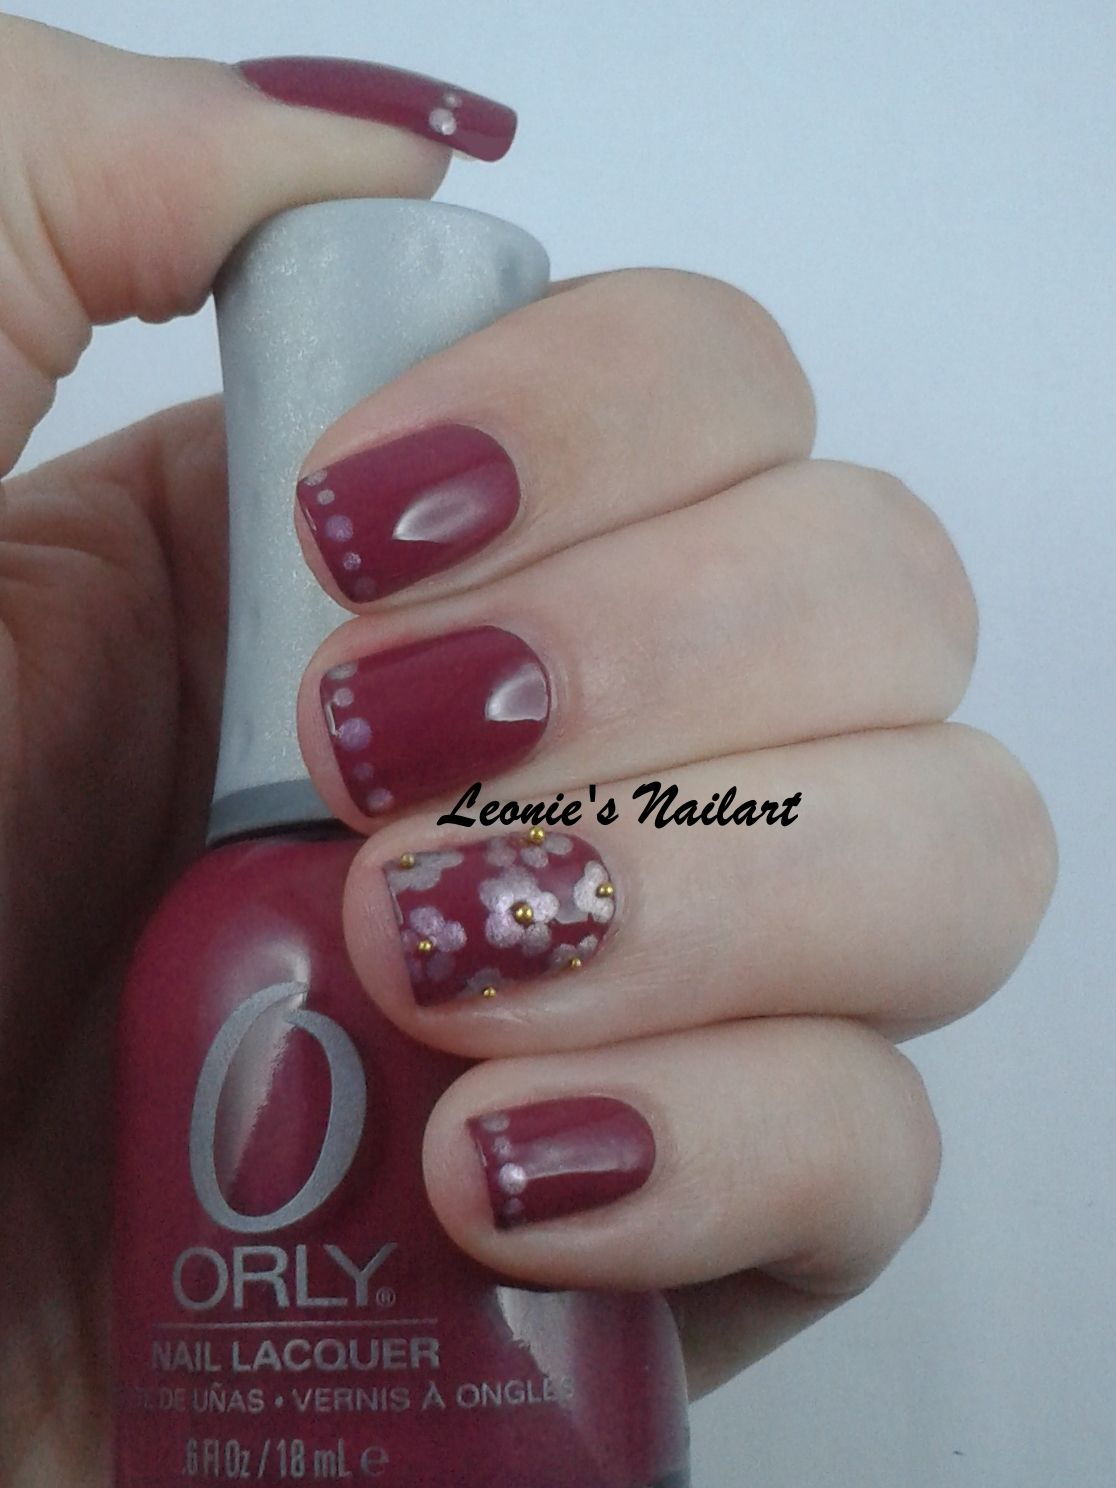 Dc day dotticure a simple dotticure with a dotted french line